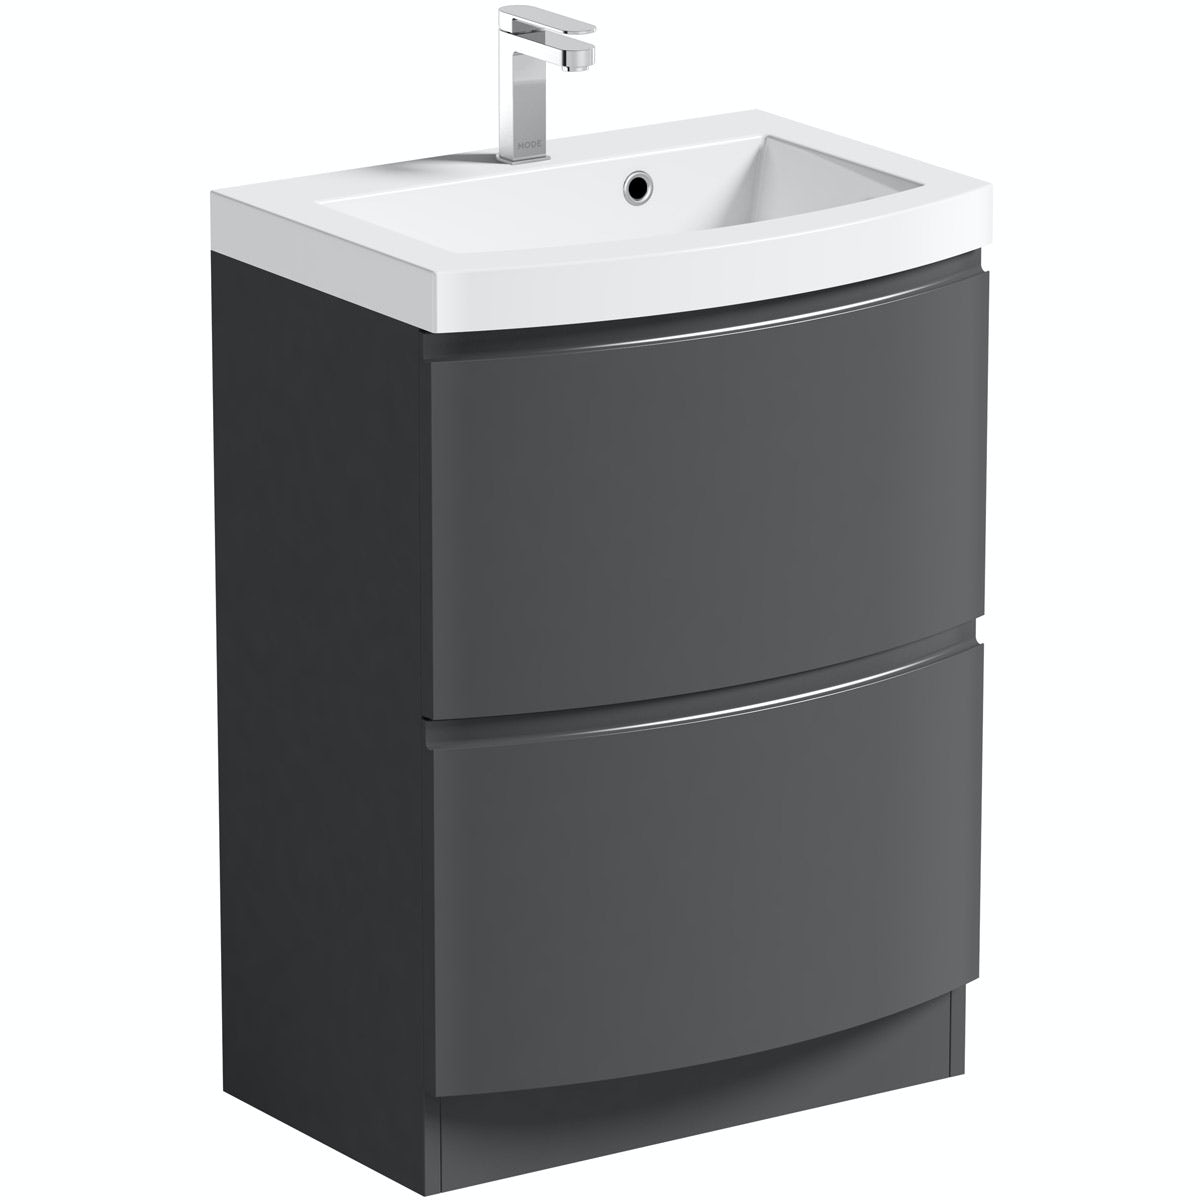 Harrison Slate 600 Floor Drawer Unit & Basin